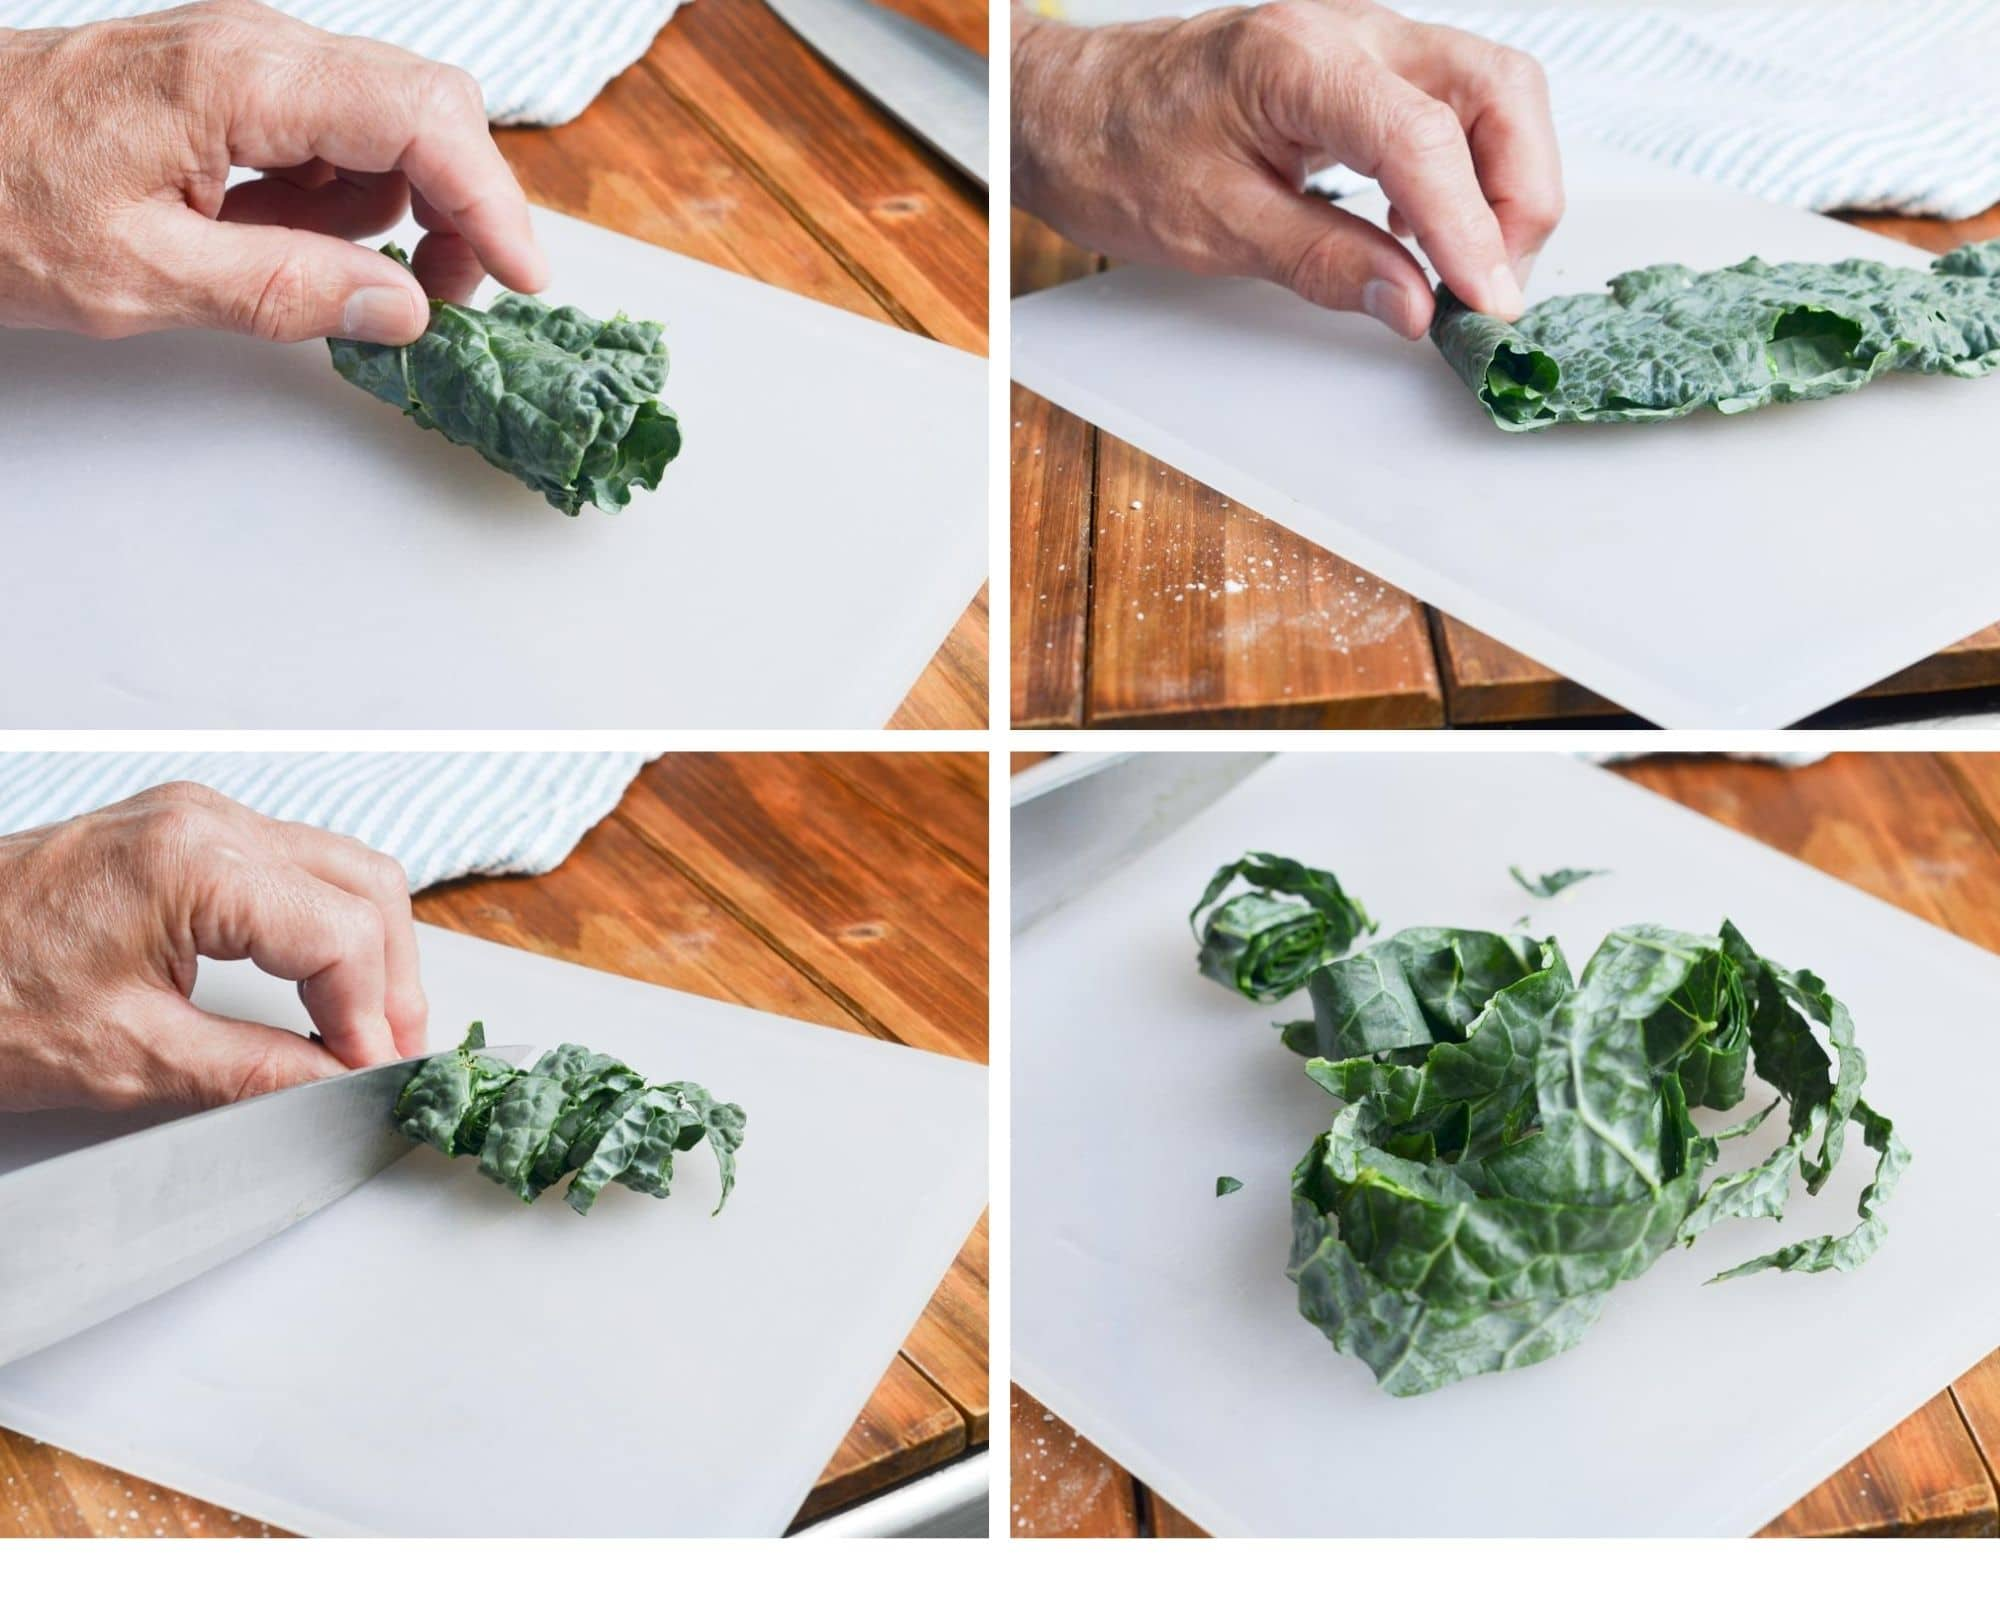 kale salad step by step how to cut kale.